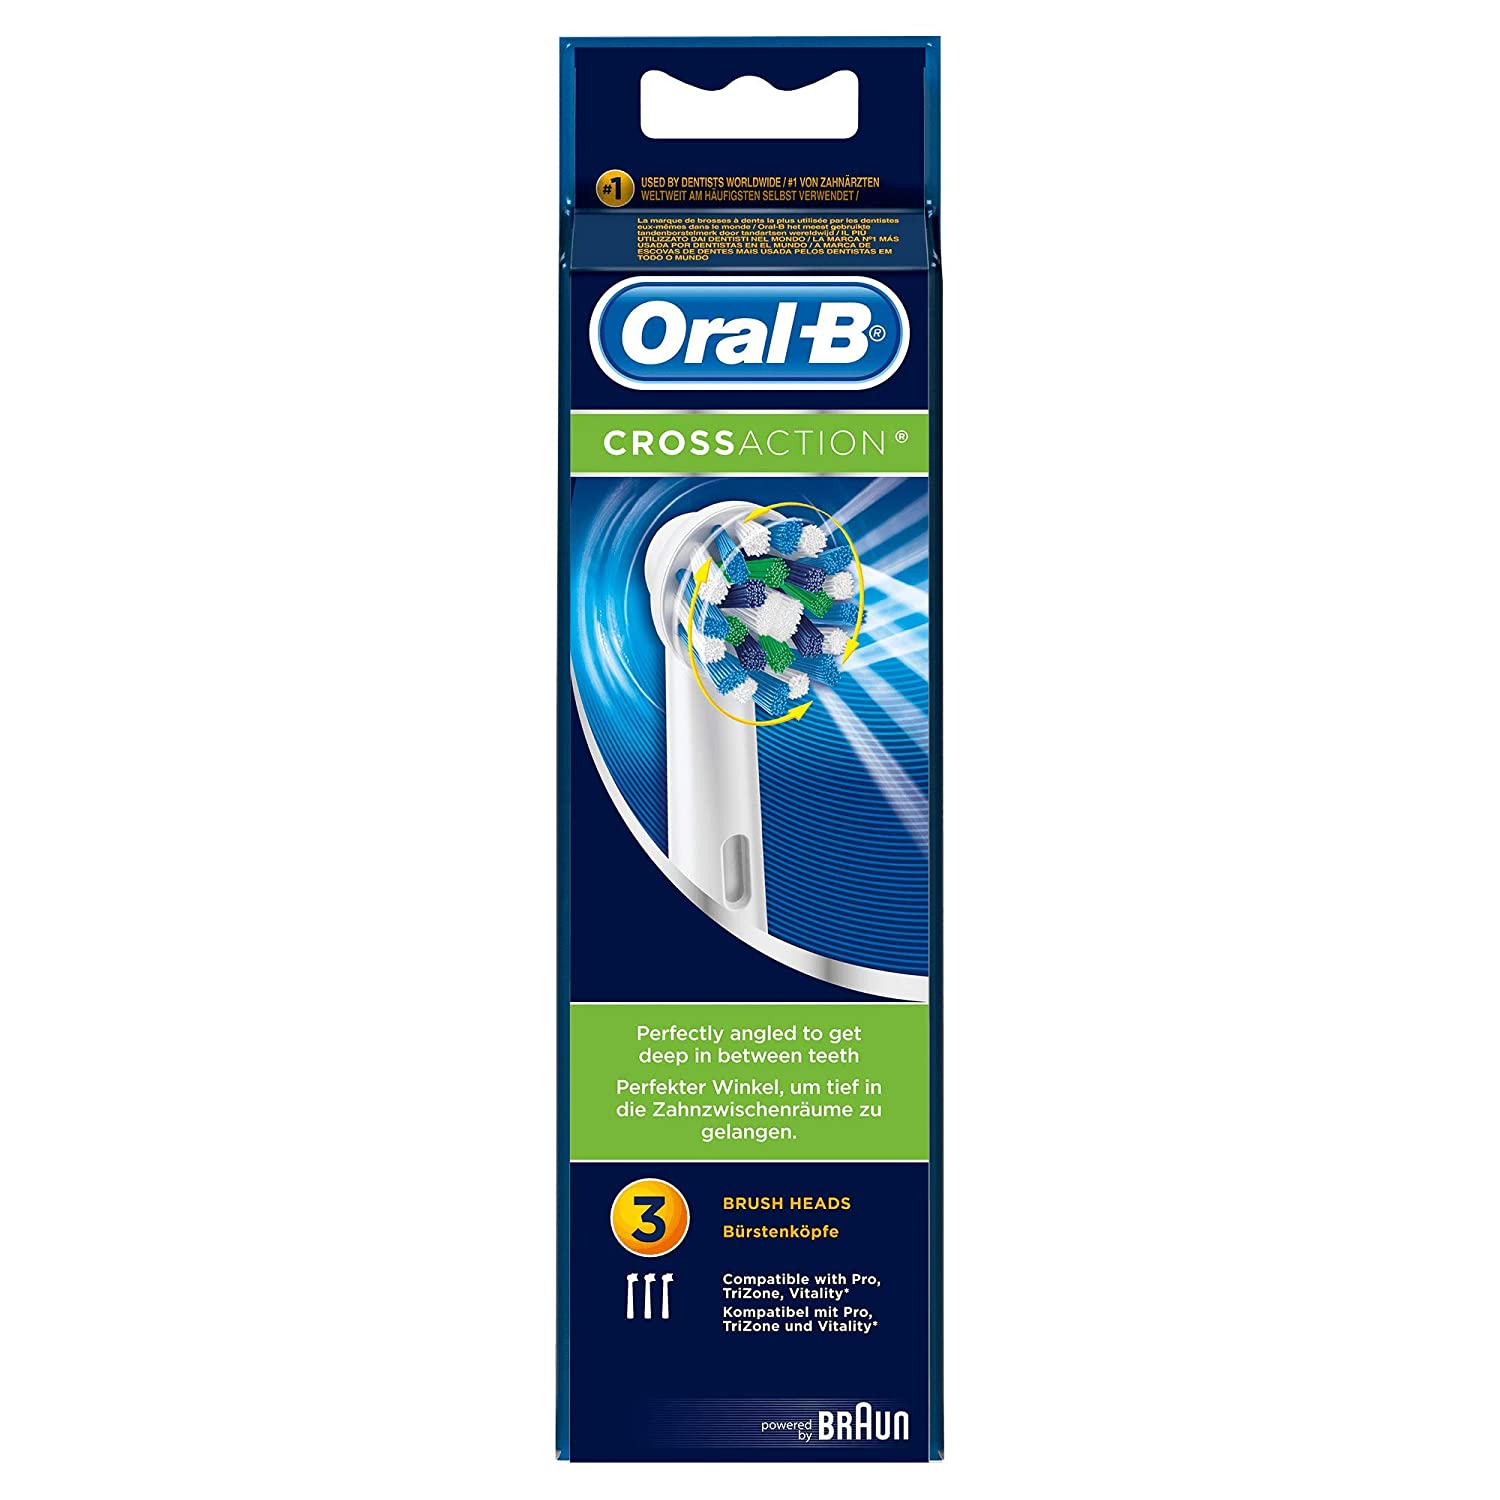 Oral-B Cross Action Electric Toothbrush Replacement Brush Heads Refill, Count (2)